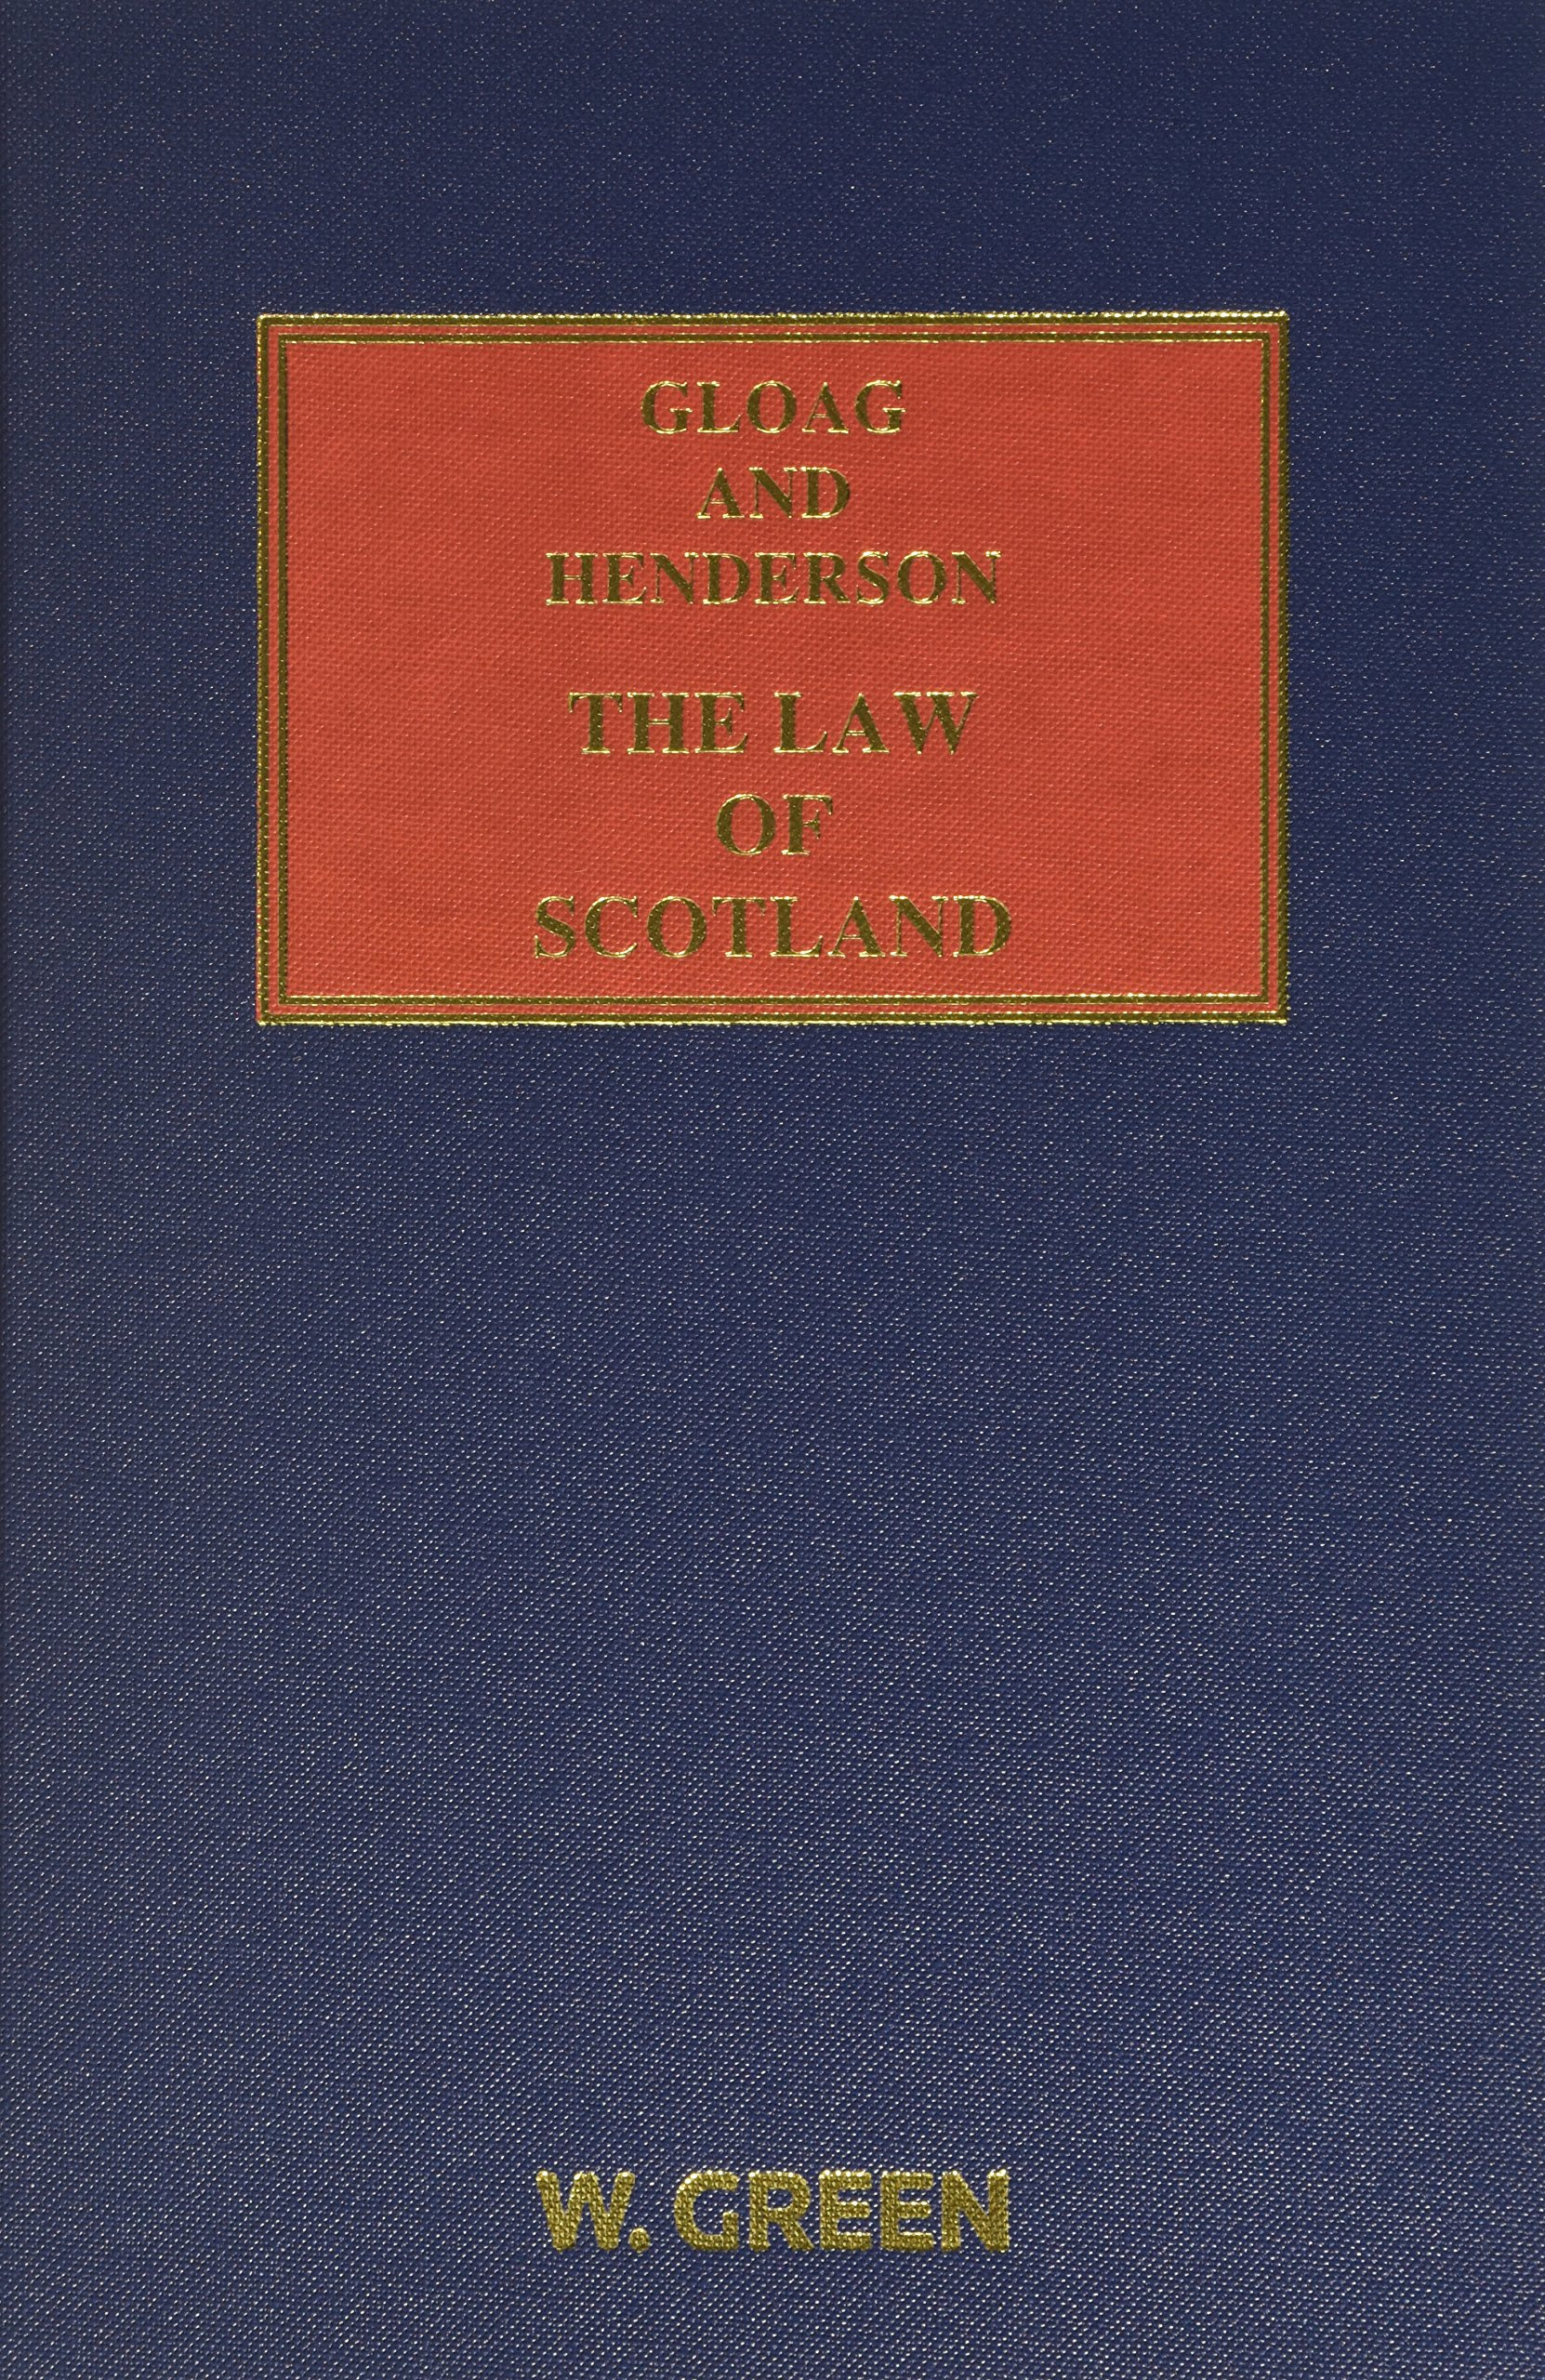 gloag and henderson the law of scotland amazon co uk hector l